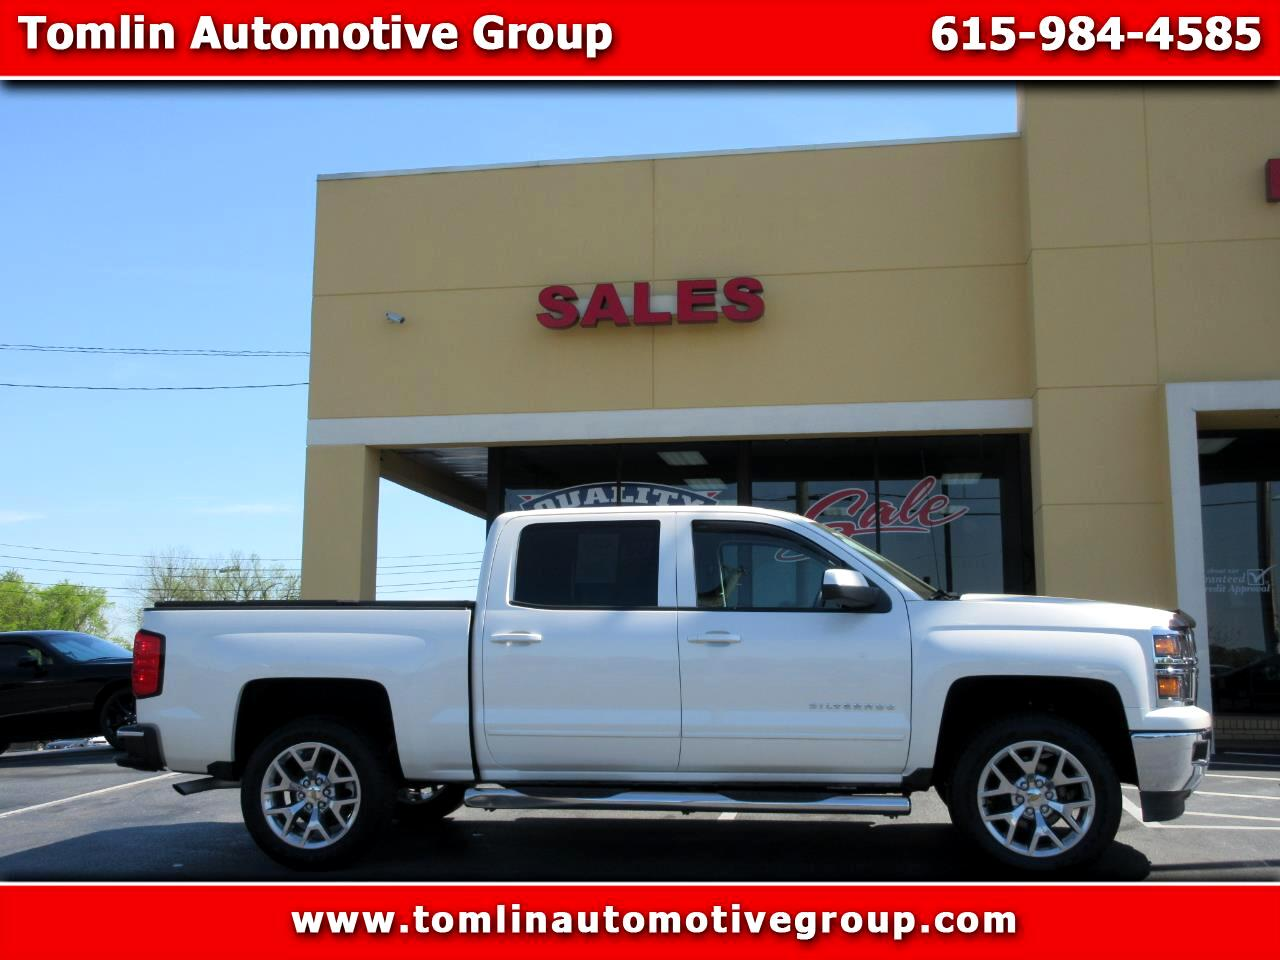 2015 Chevrolet Silverado 1500 Z71 Short Bed 4WD